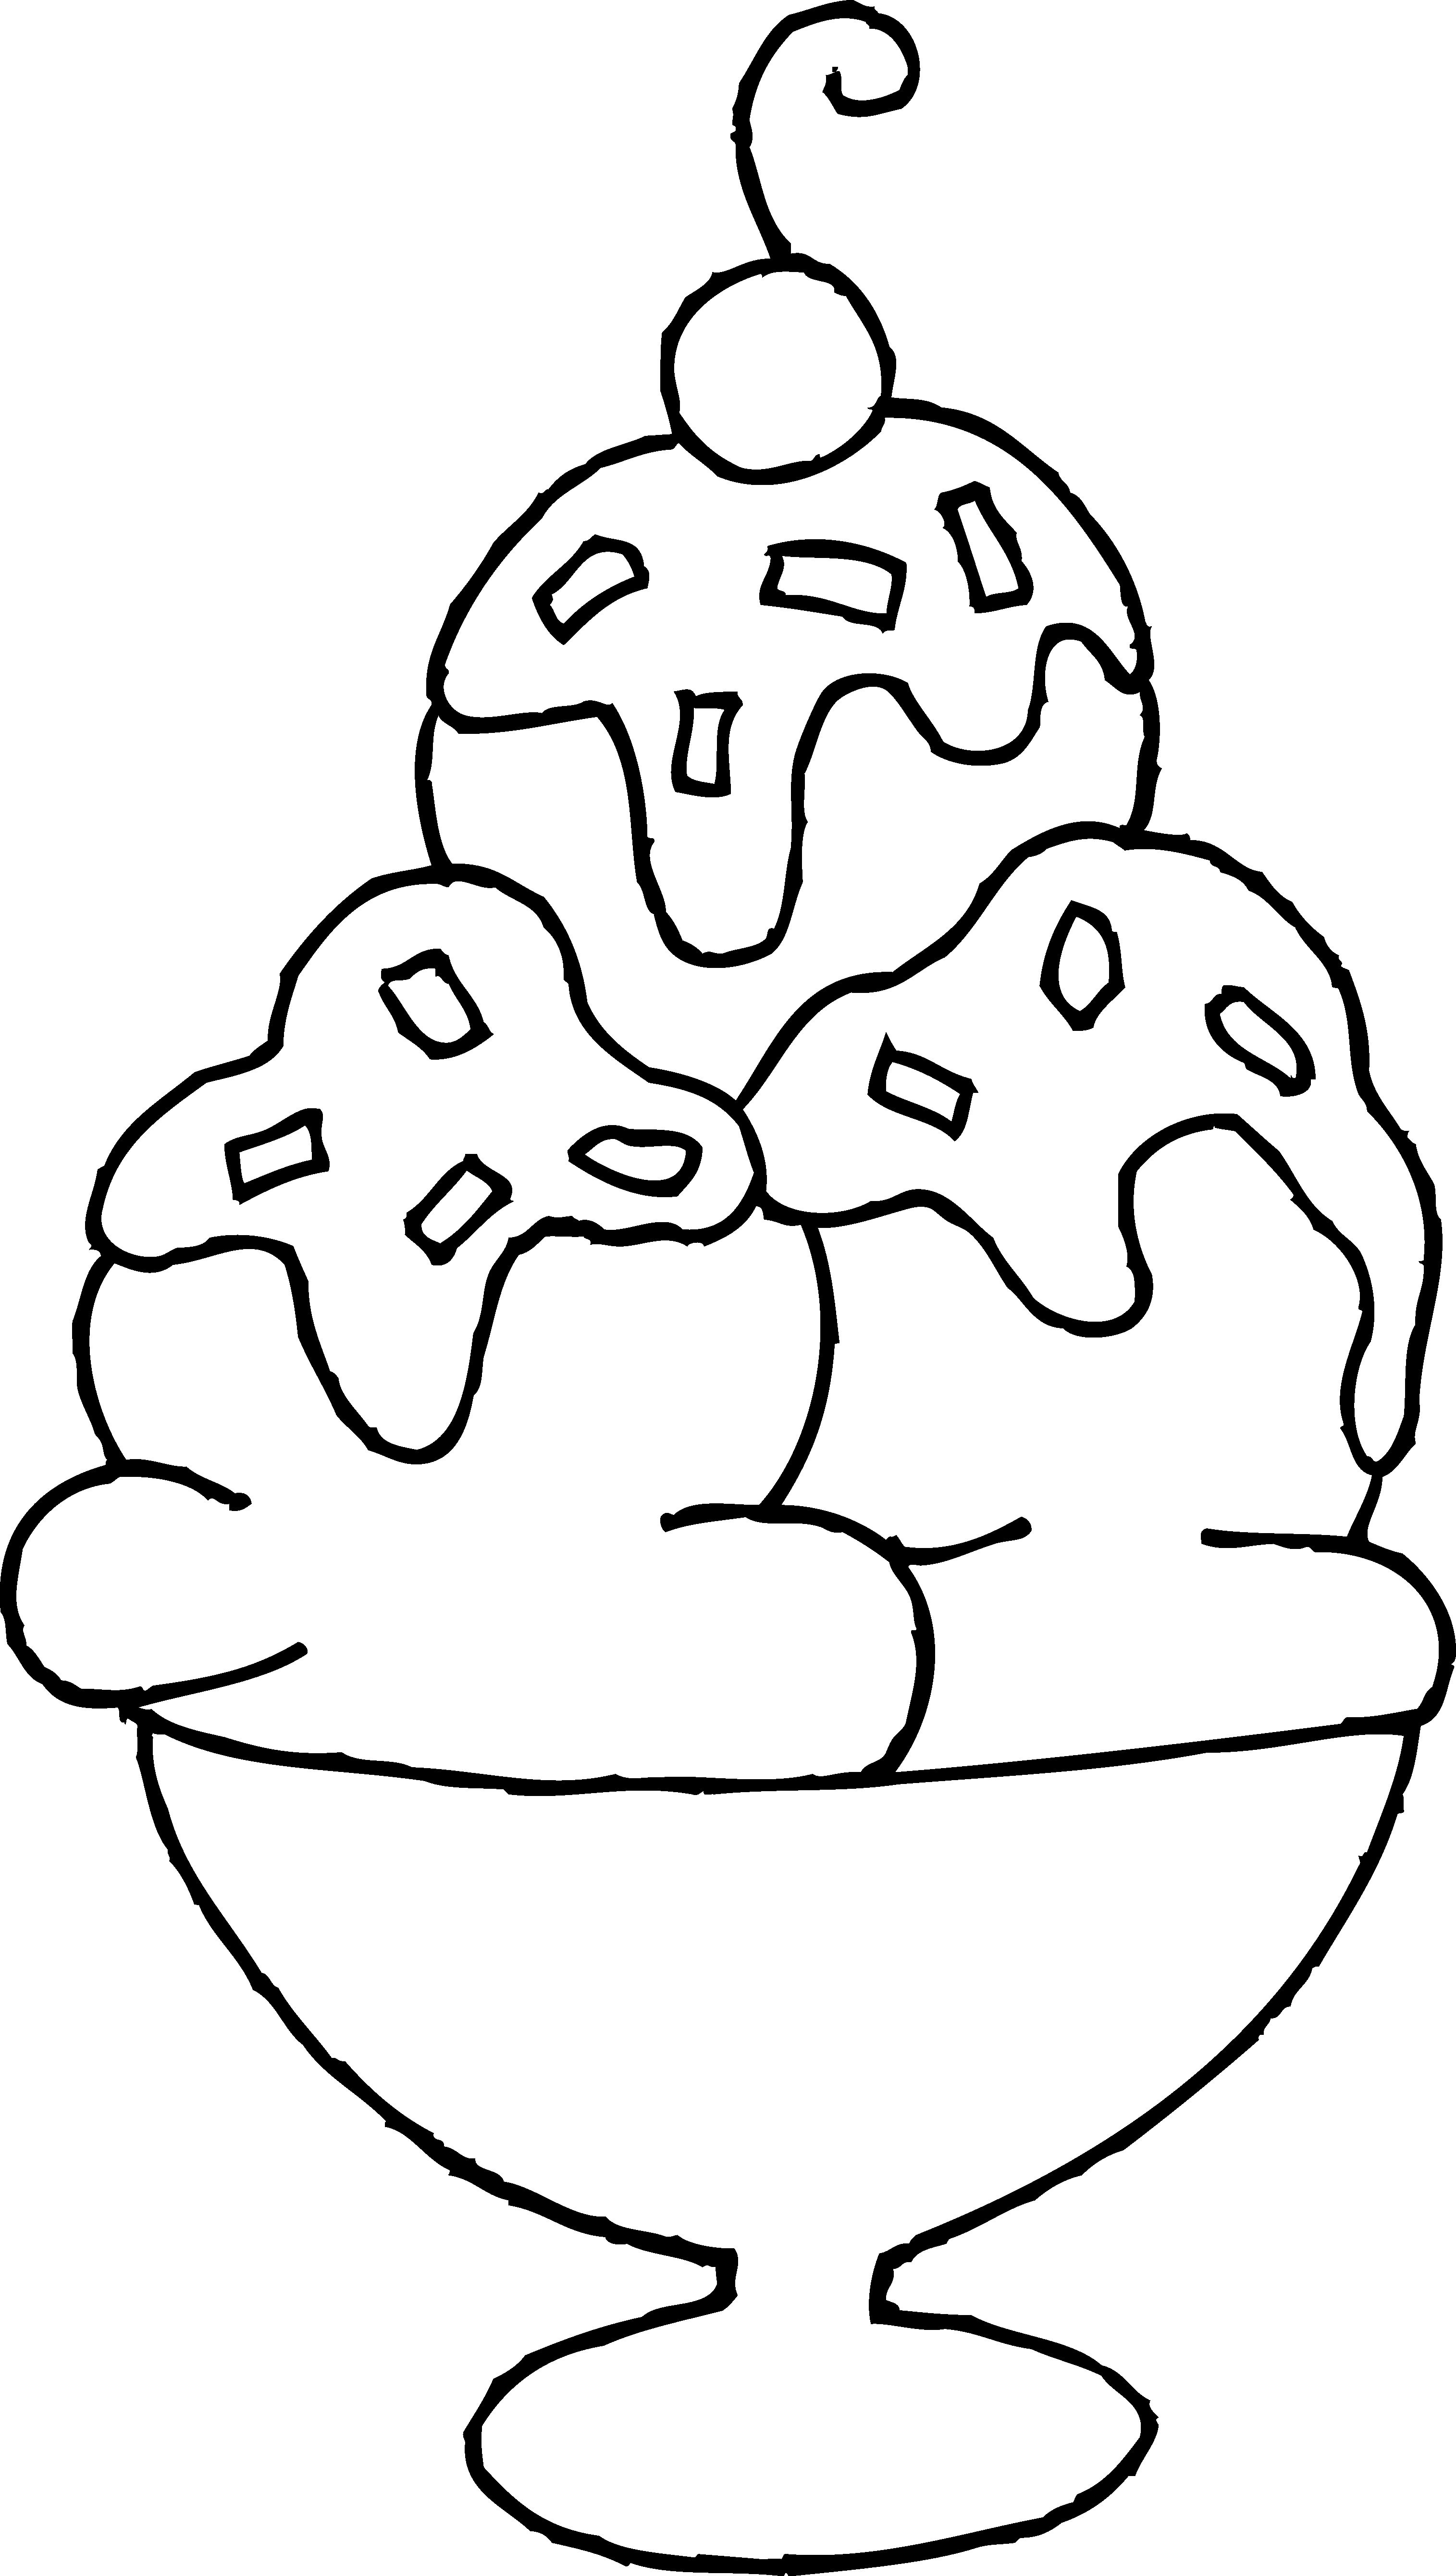 Magnificent Ice Cream Sundae Coloring Page Ice Cream Coloring Pages Free Coloring Pages Truck Coloring Pages